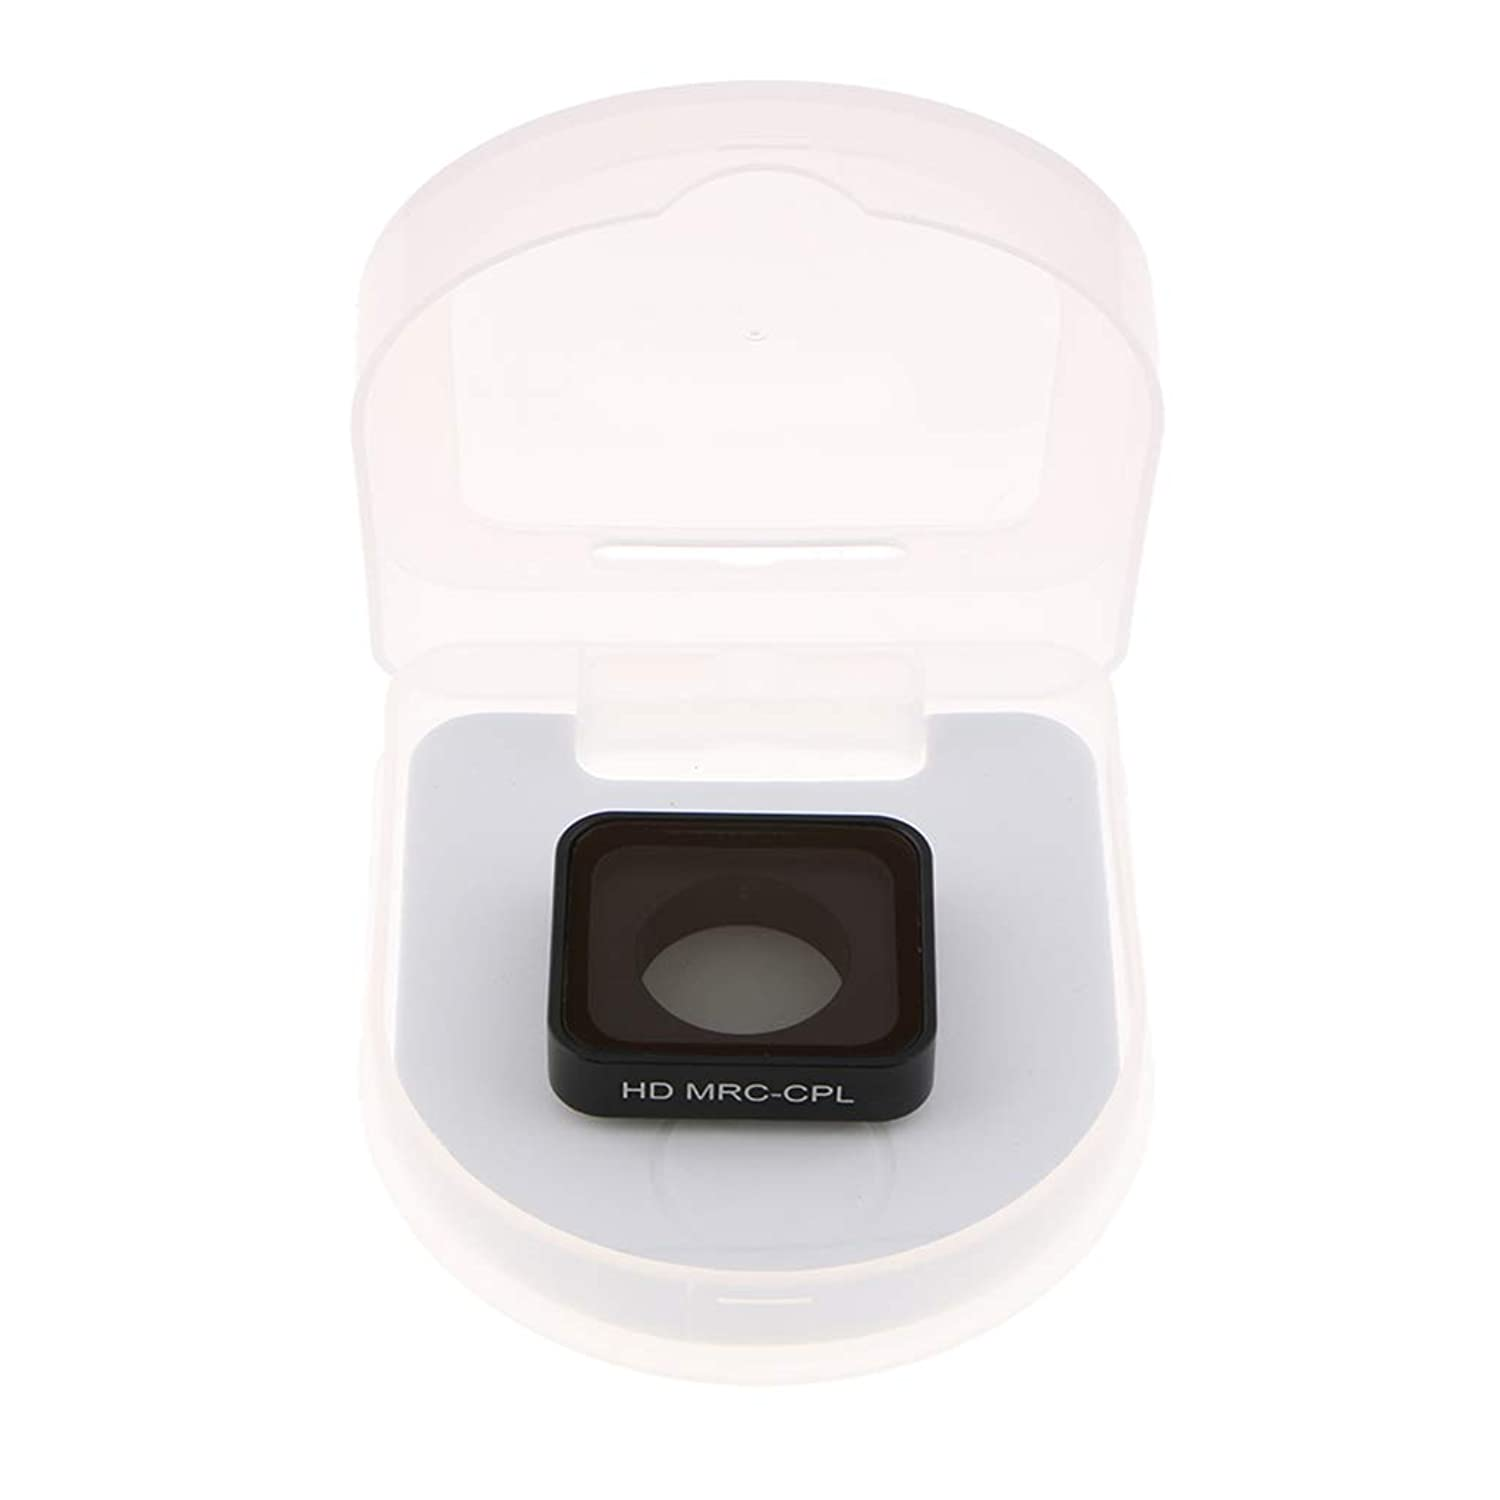 SM SunniMix CPL Filter Lens Cover Protector Replace for GoPro Hero 7 5 6 Cameras Black itxatl3625025